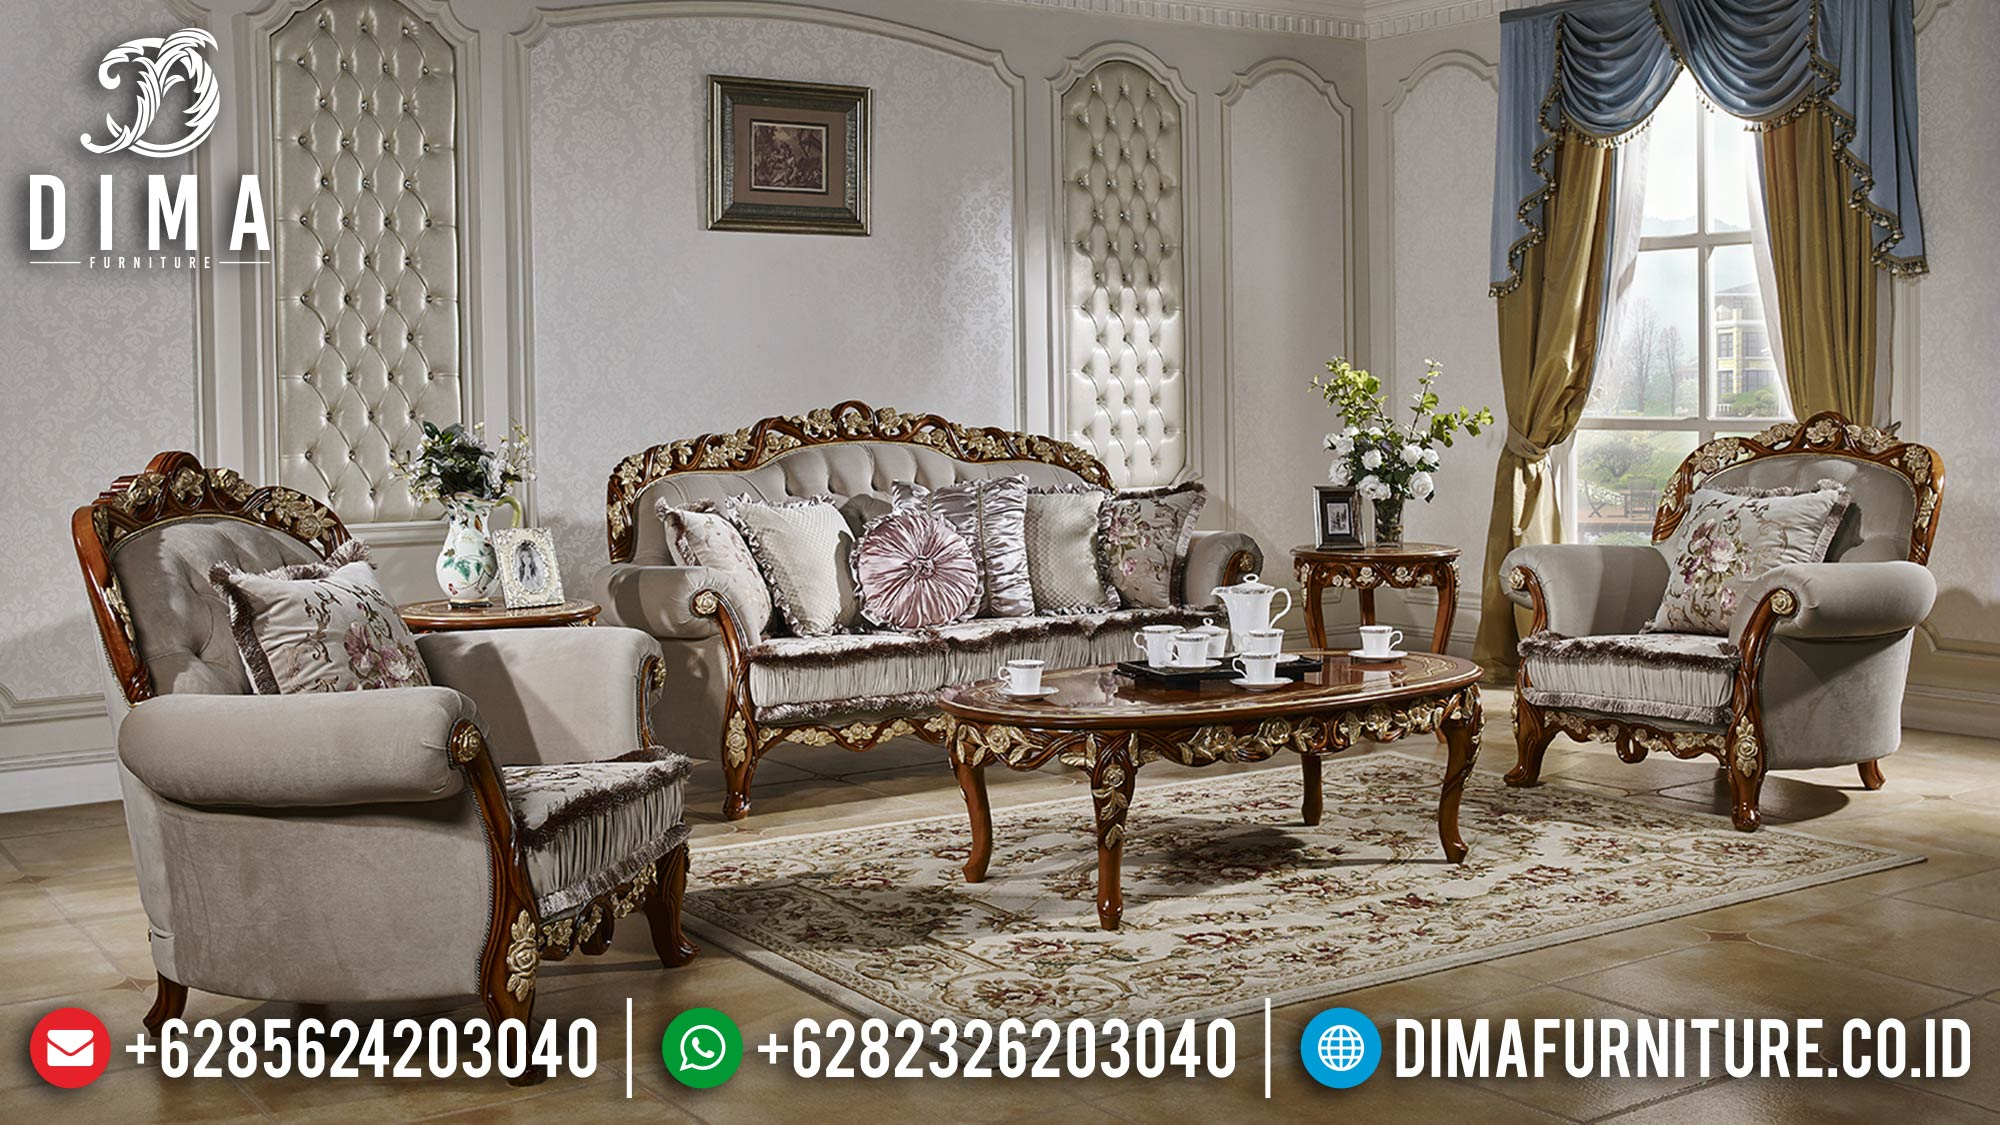 Sofa Tamu Mewah Klasik Jati Perhutani Natural Color Luxury ST-1310